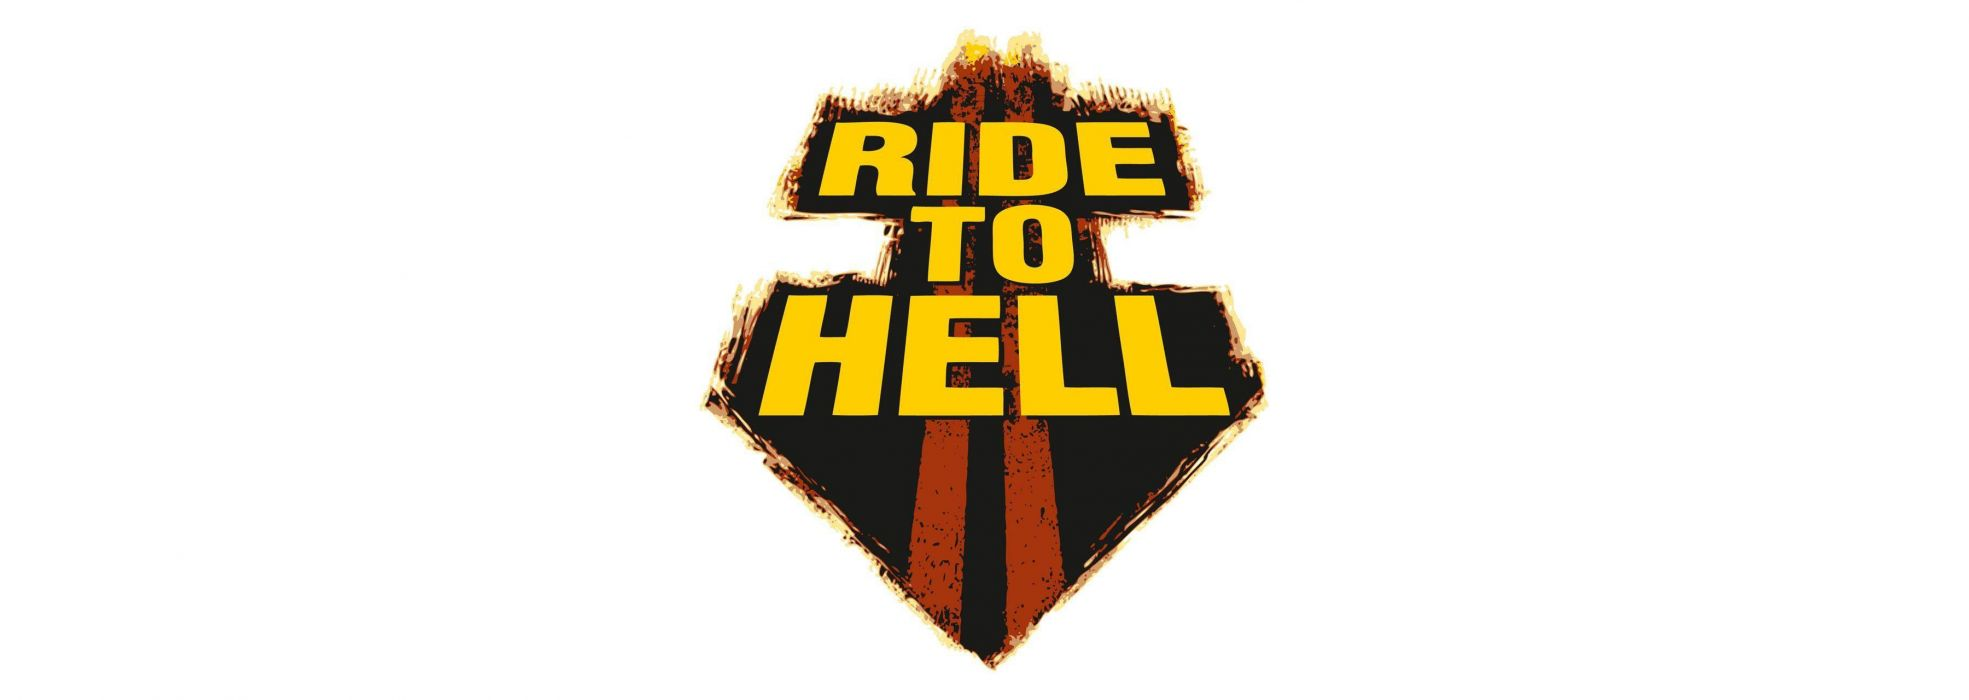 RIDE TO HELL RETRIBUTION action adventure biker fighting wallpaper